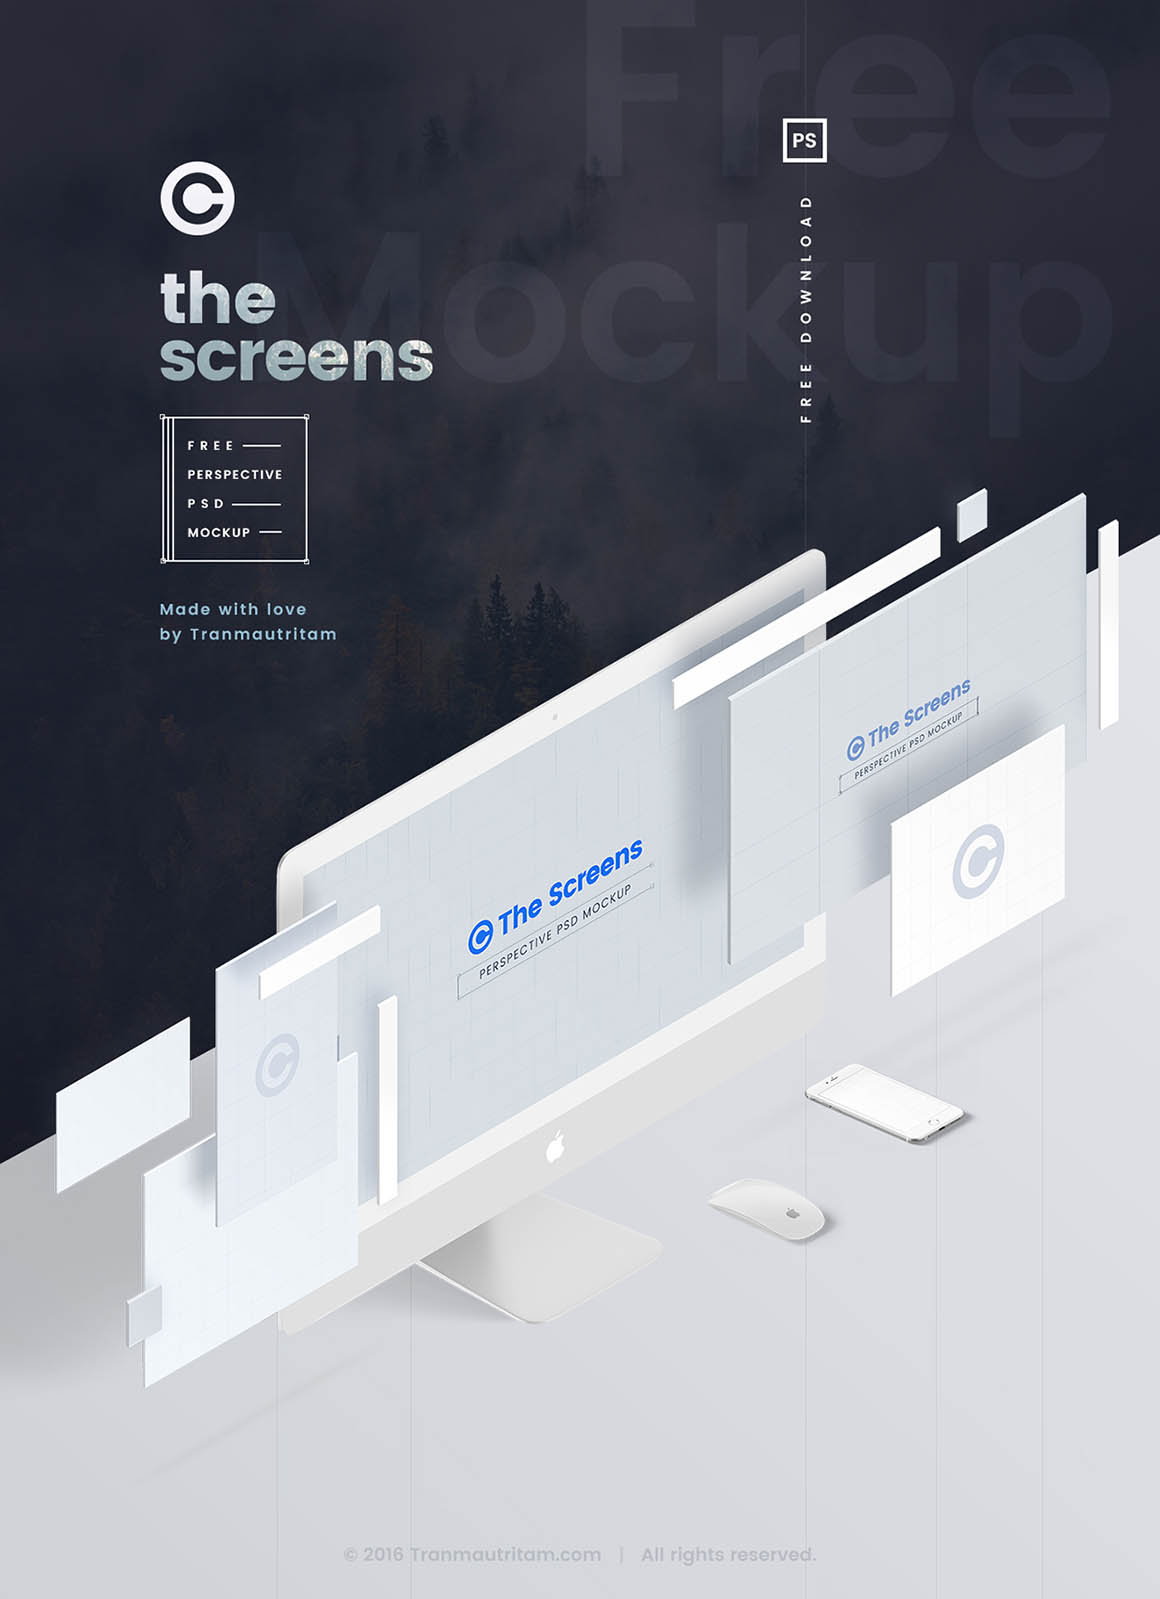 the-sceens-perspective-psd-mockup2